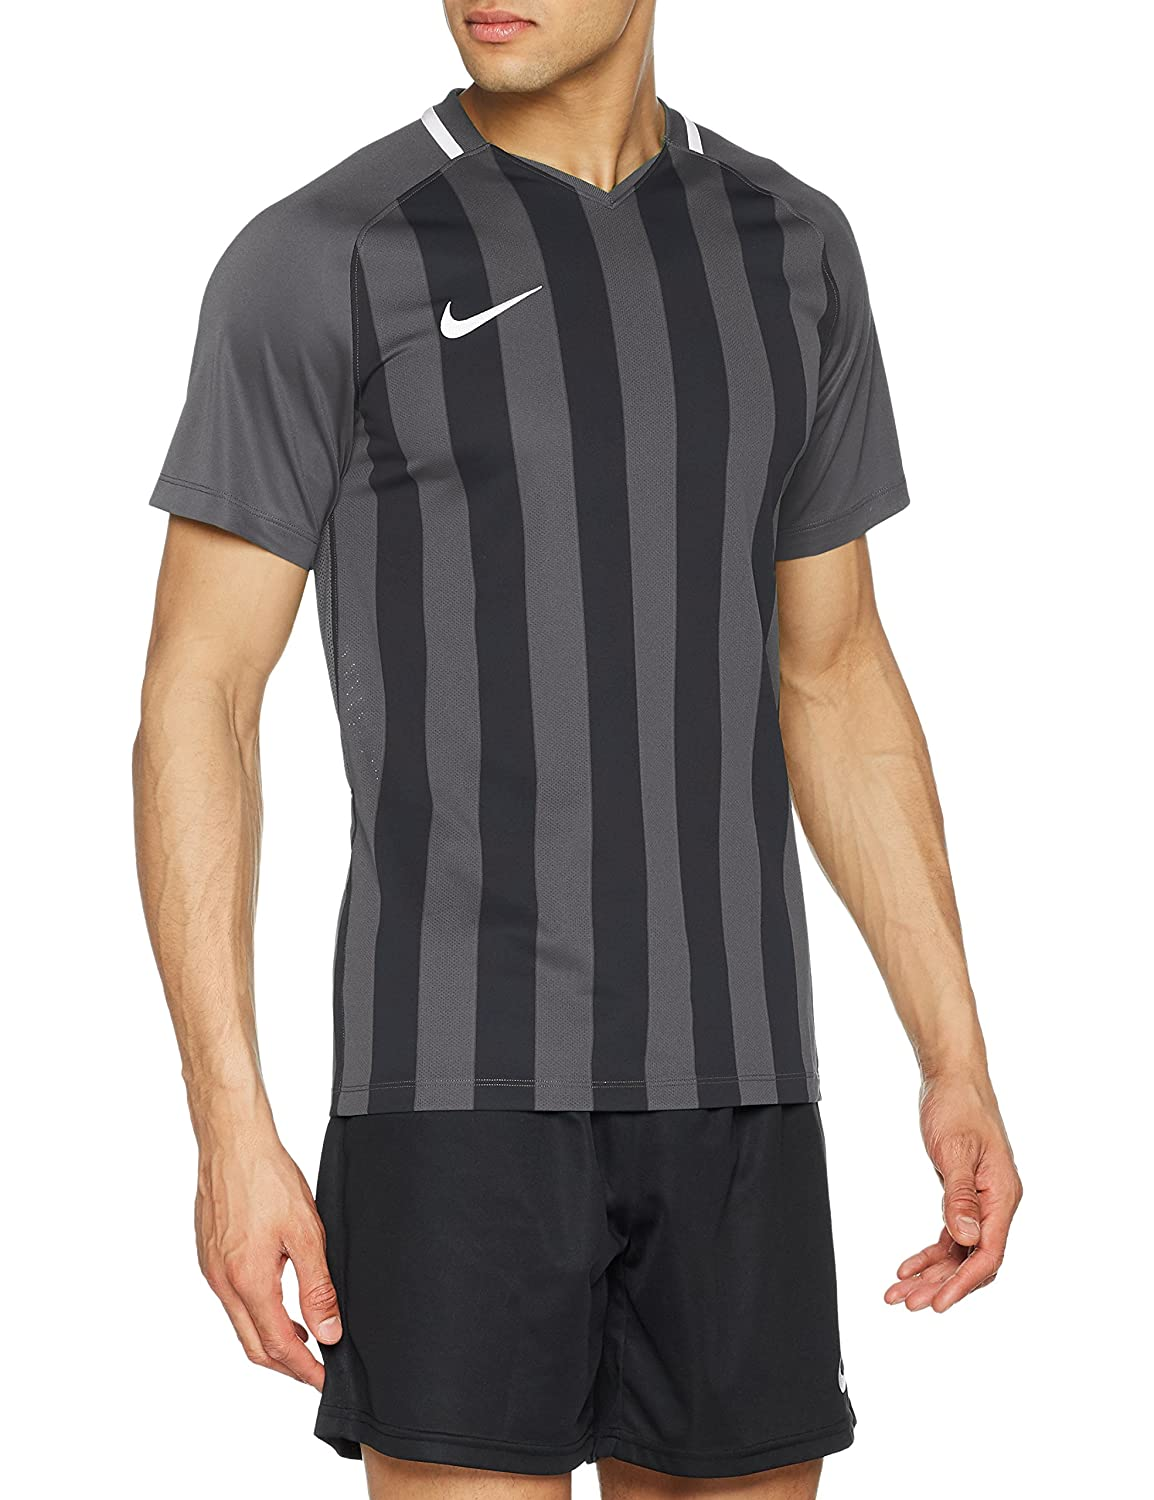 Hombre Nike Mens Striped Division III Football T-Shirt